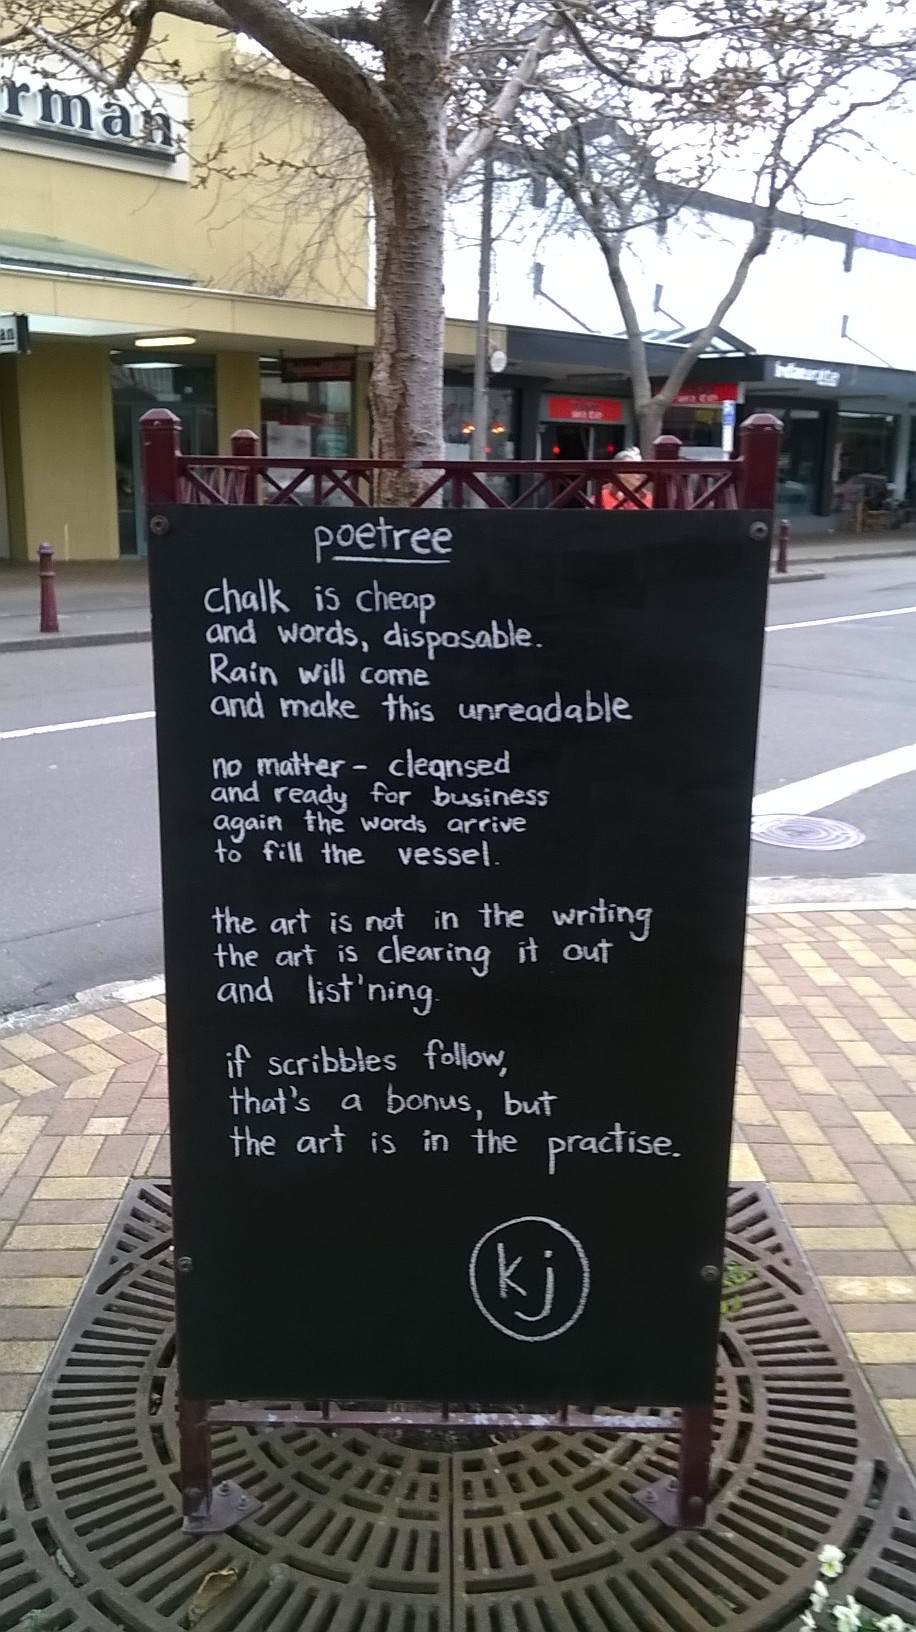 Our local Poetree